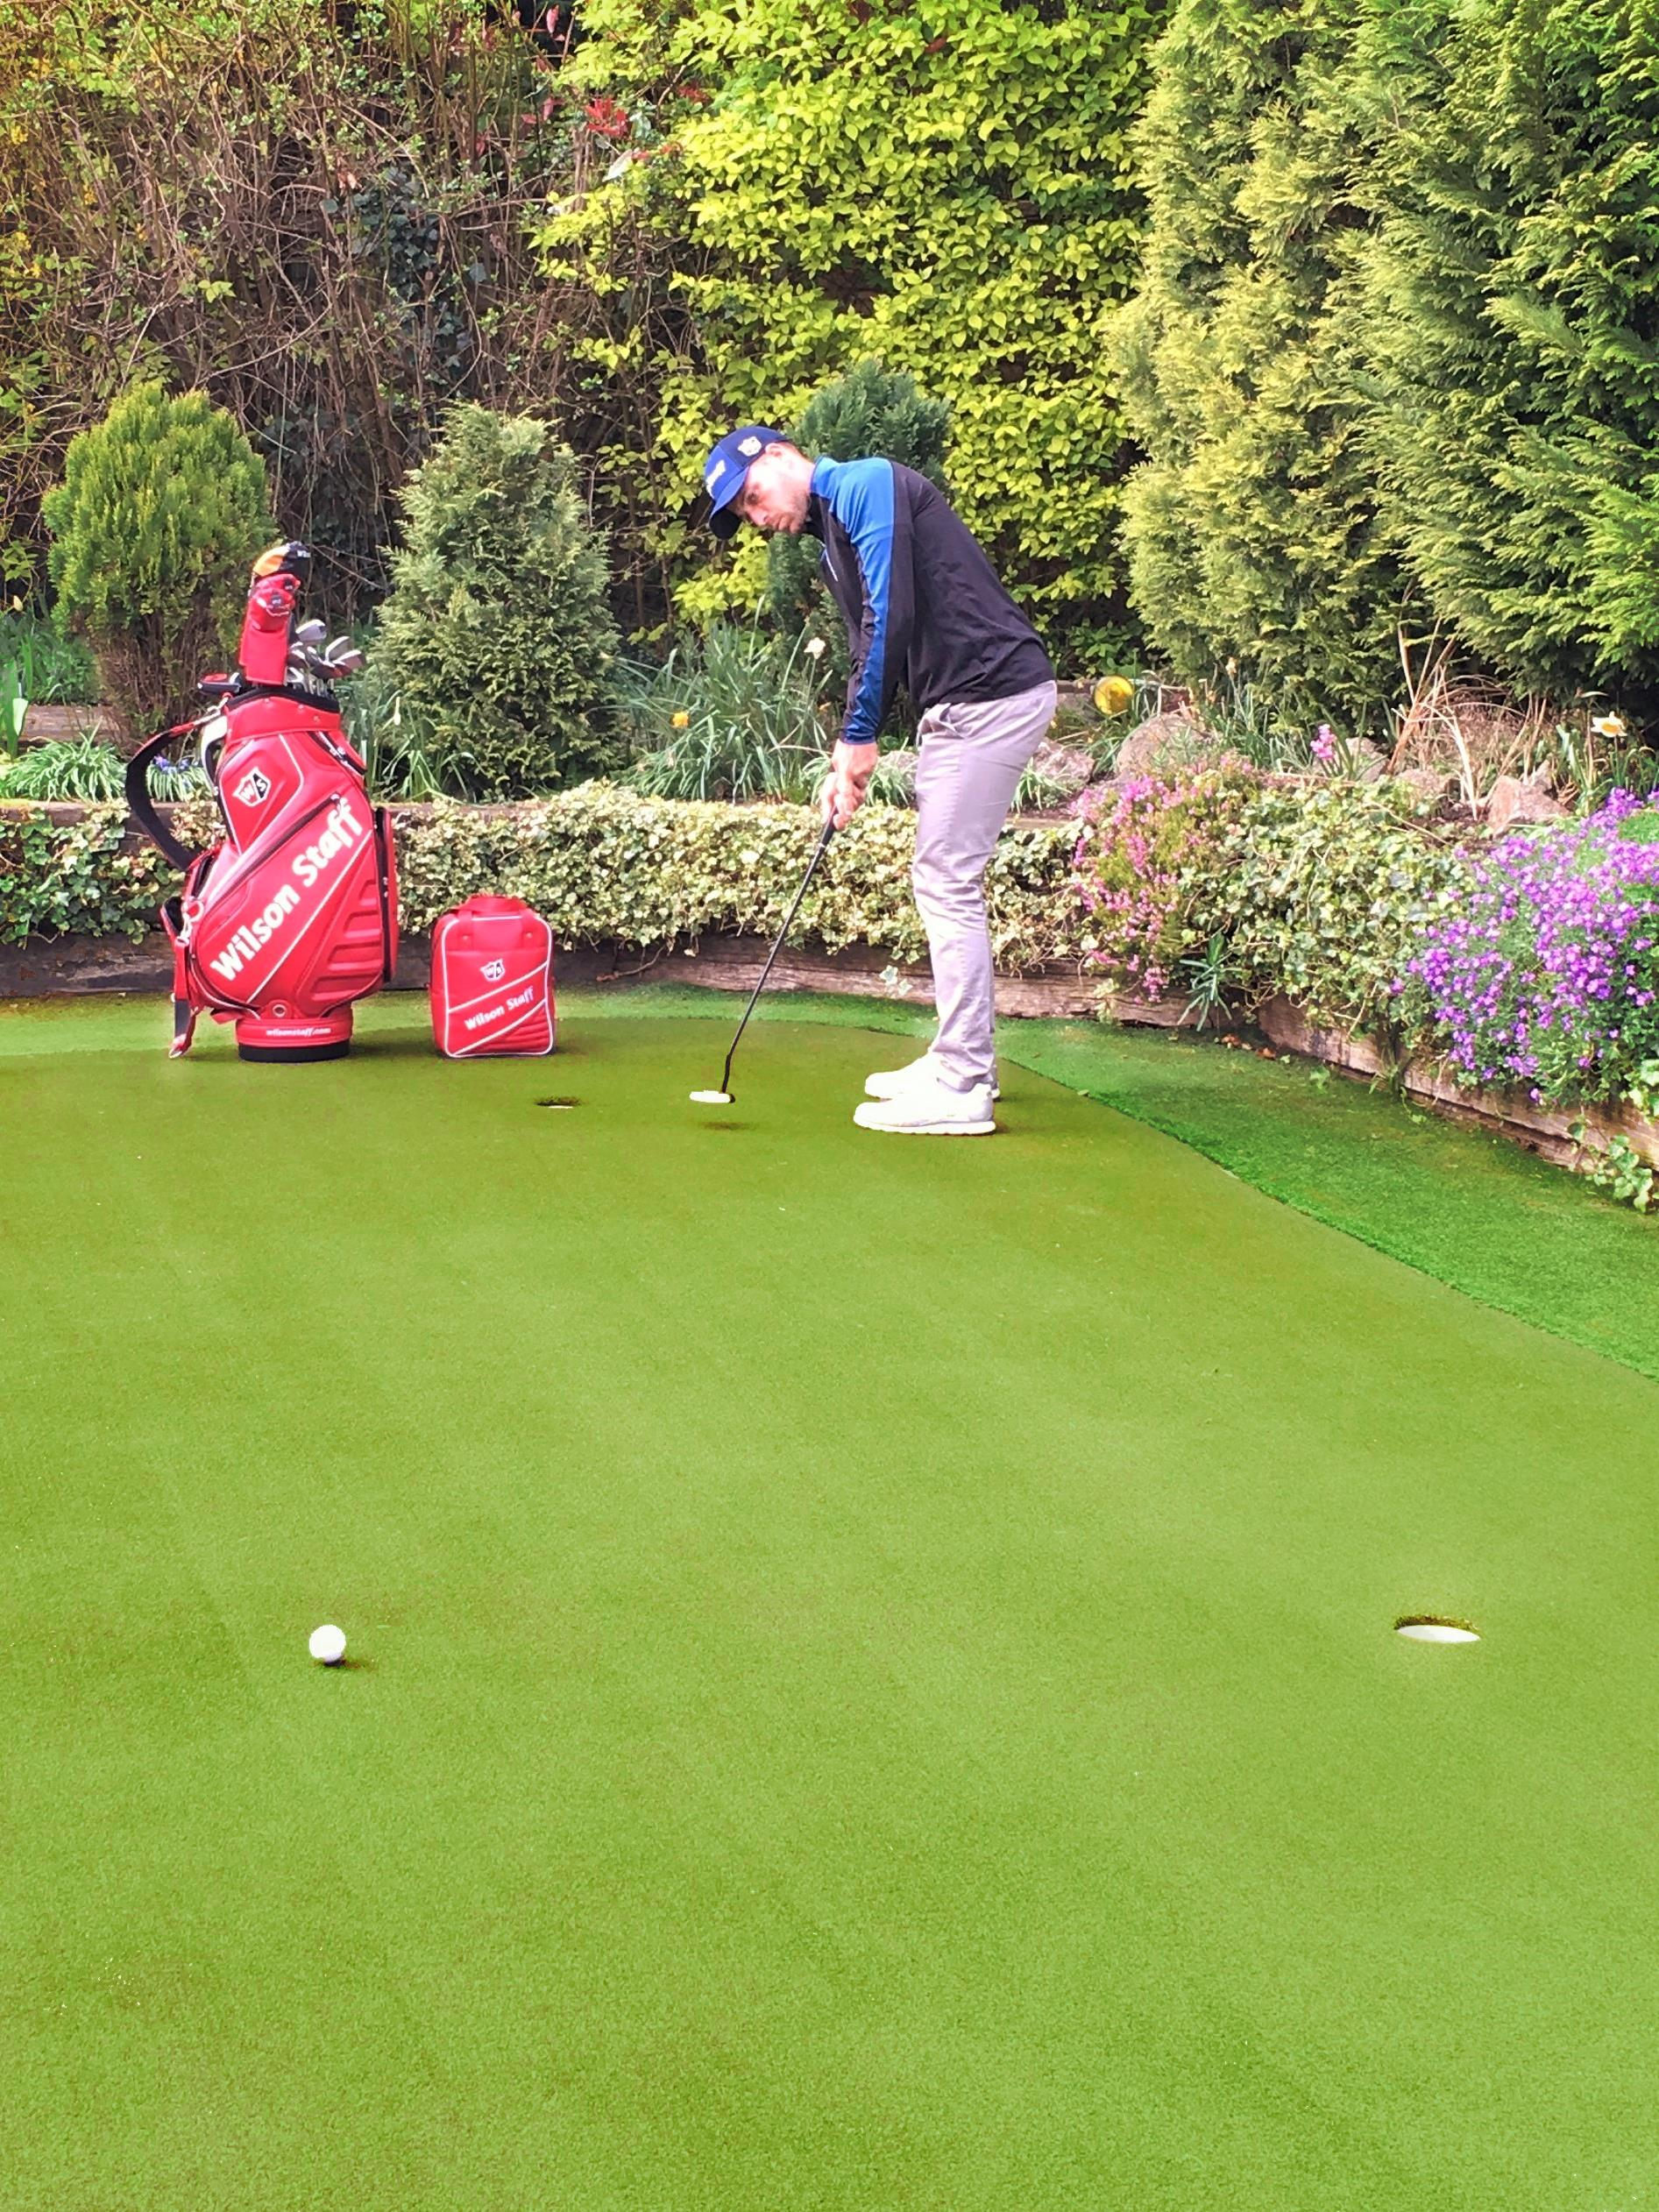 Gary King practises at home on his Huxley Putting Green